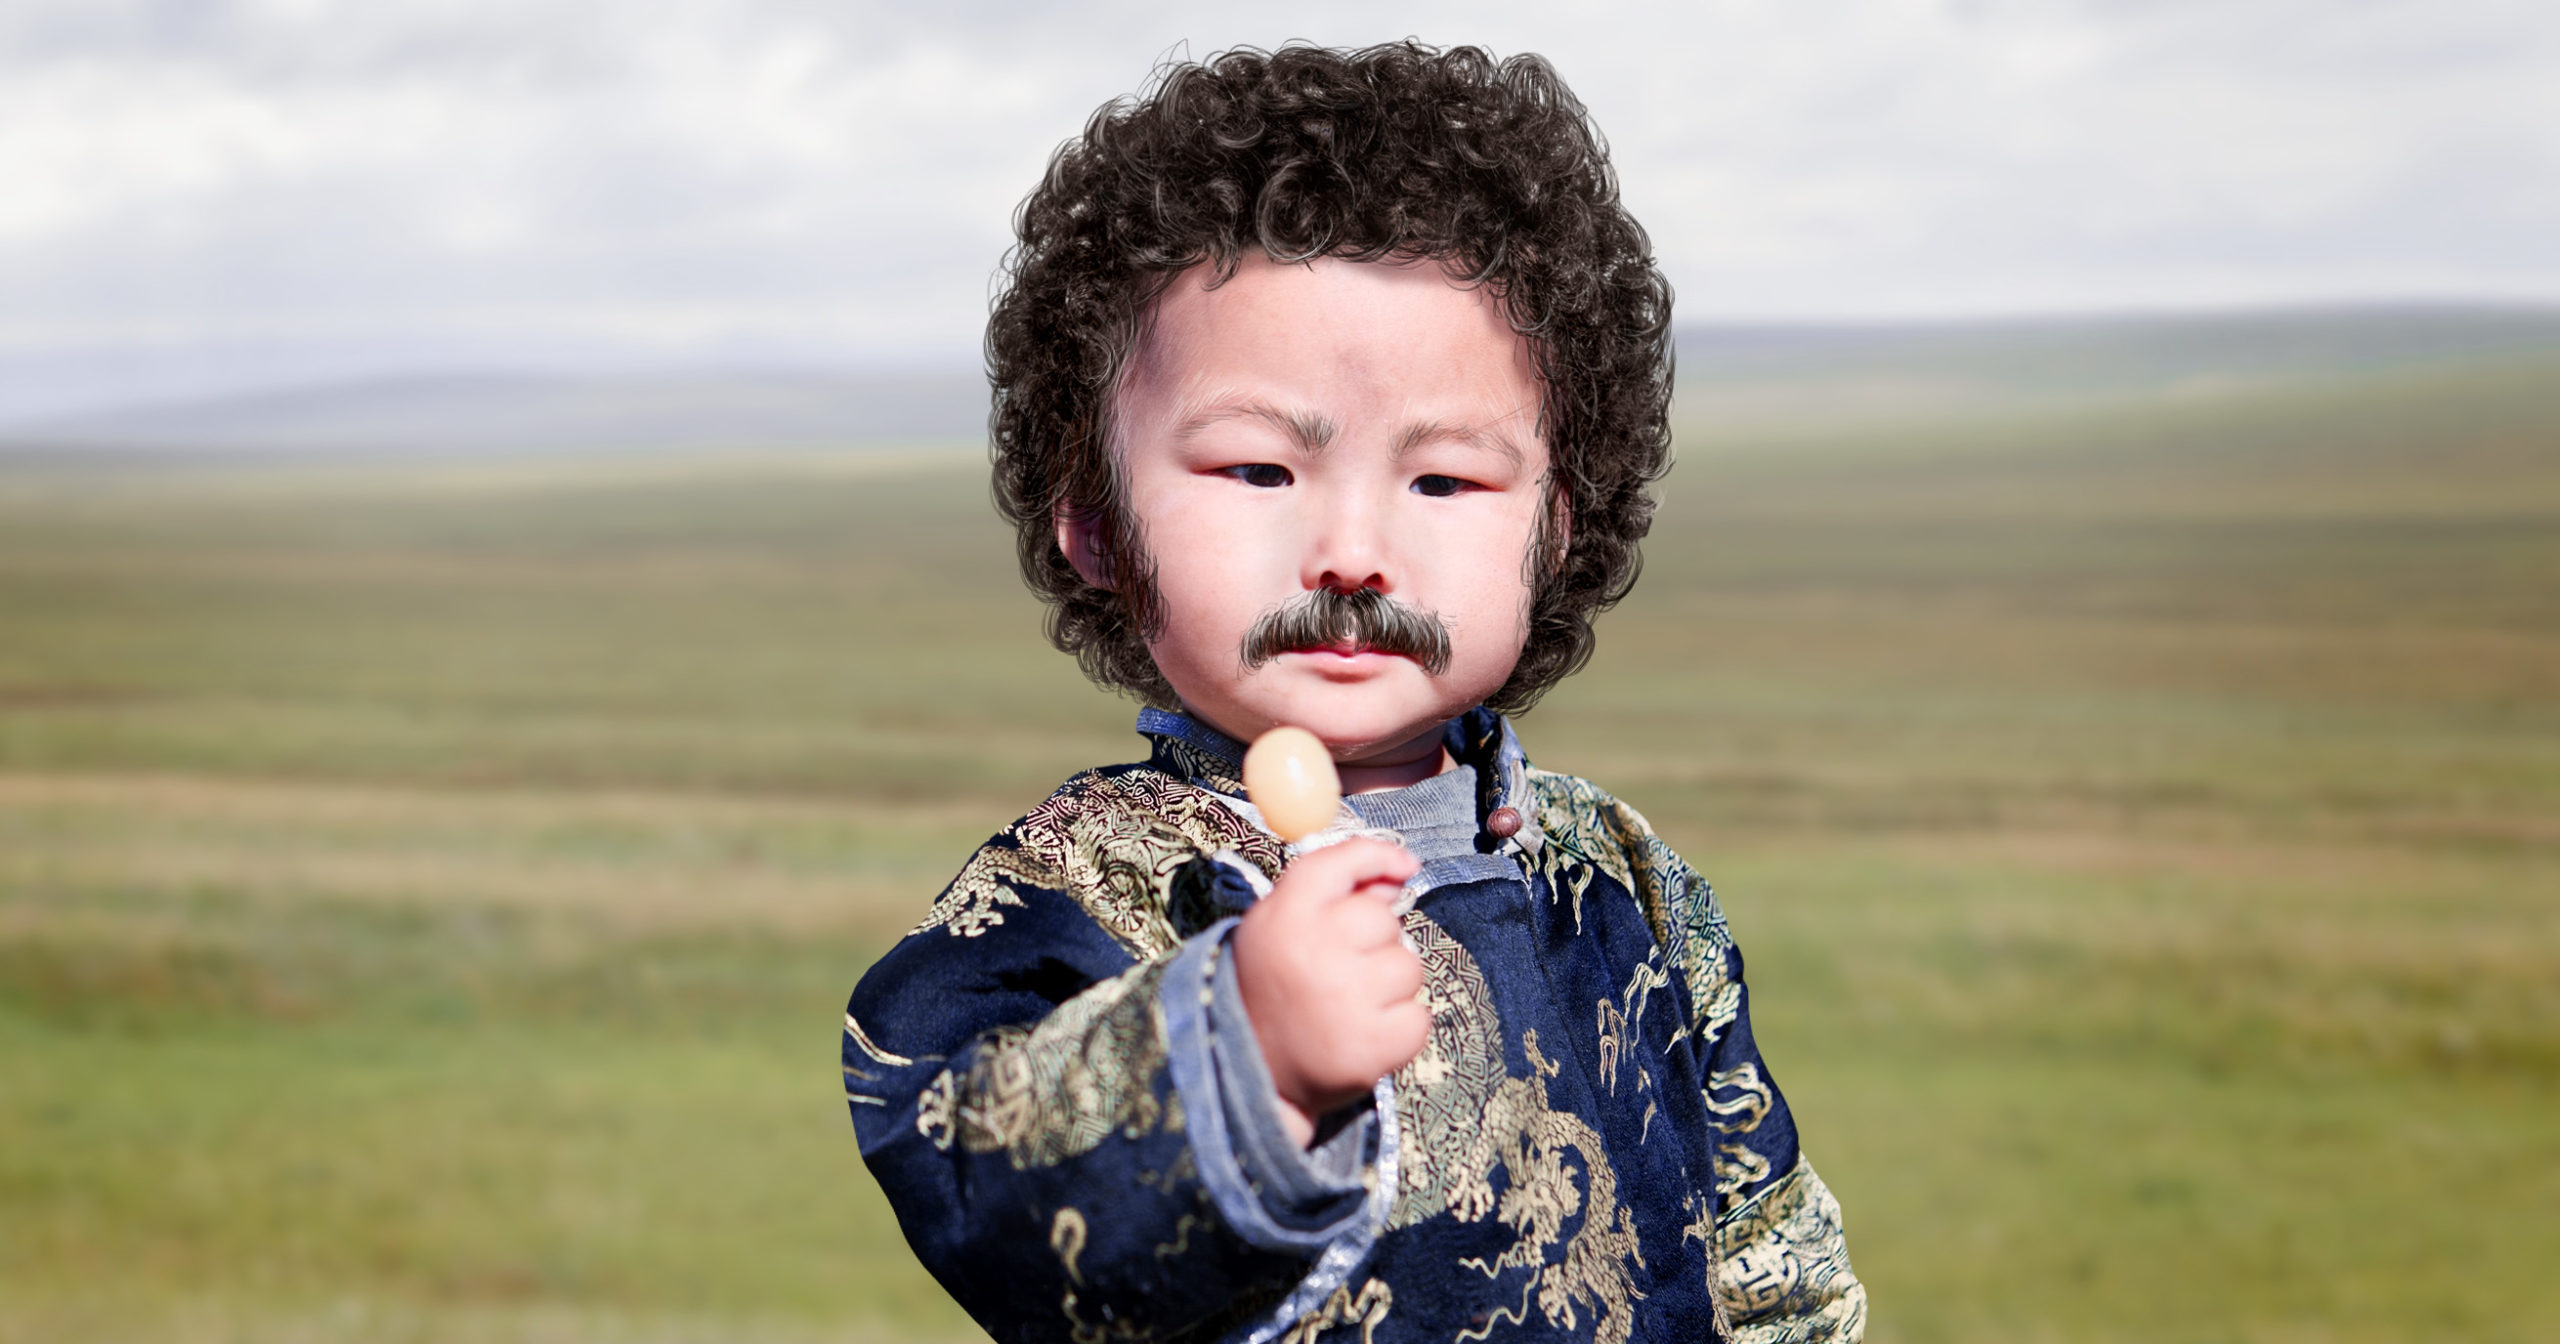 An Exciting New Era For 'Jeopardy!': A Mustachioed Baby Boy From A Tribe Of Nomads In Inner Mongolia Has Been Named As The Successor To Alex Trebek